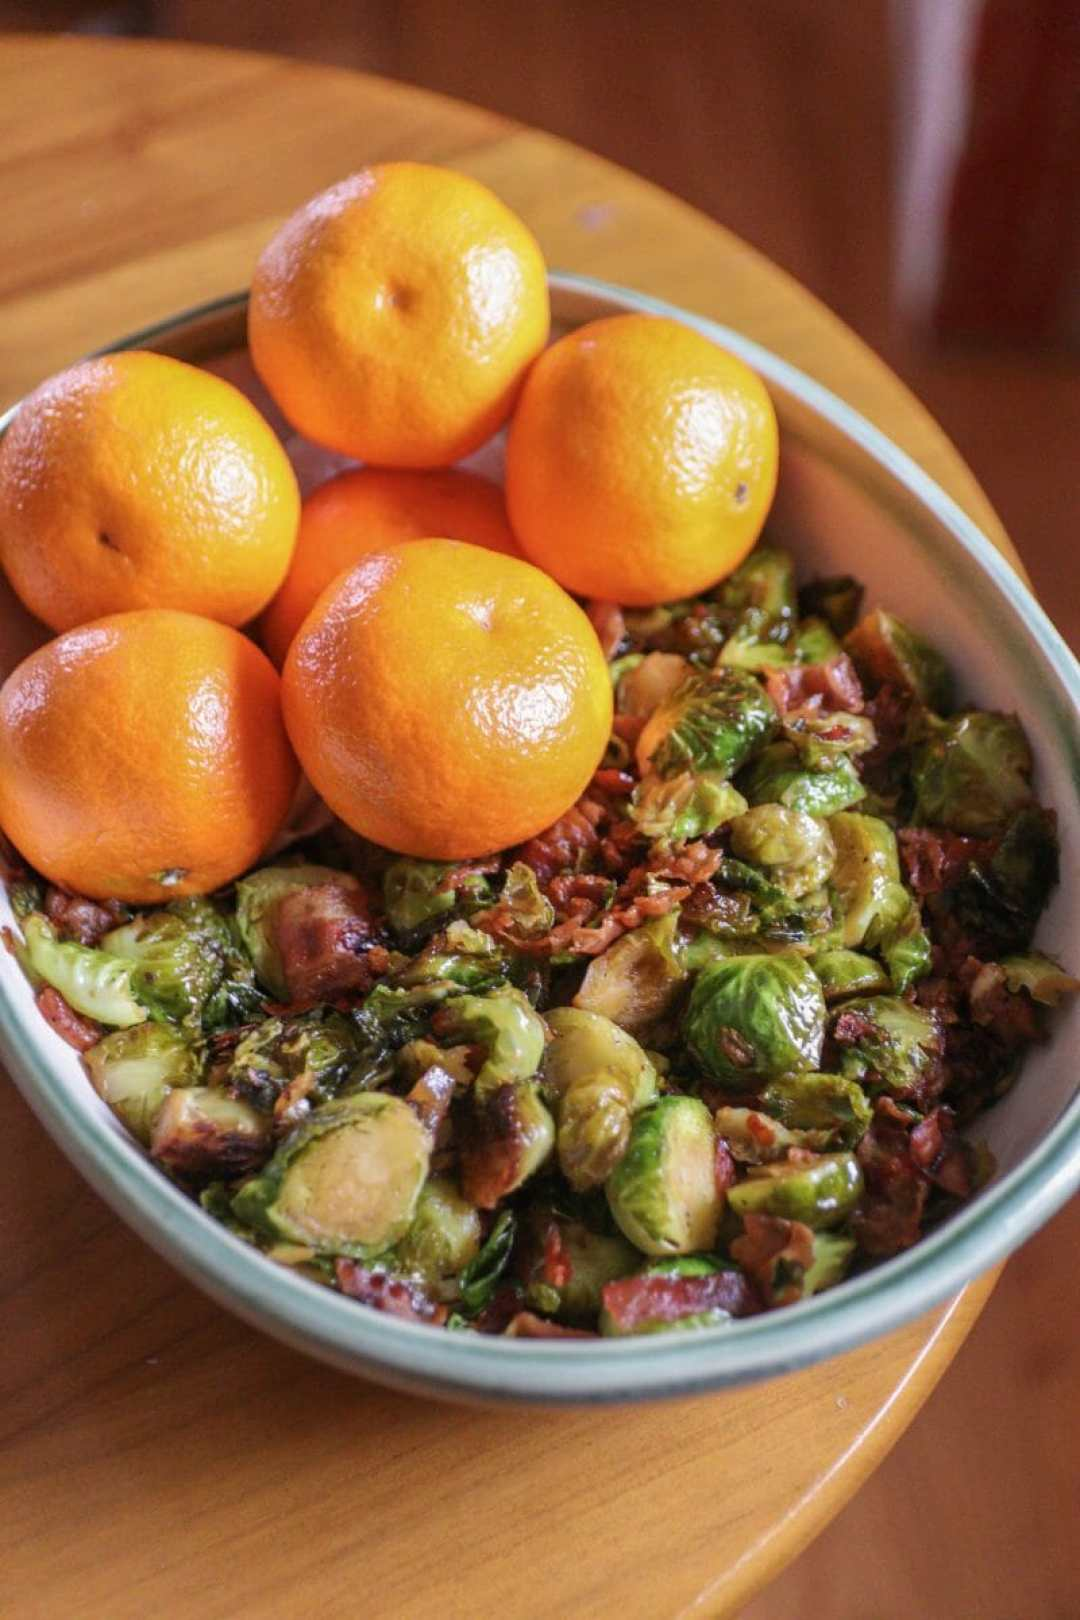 Maple Bacon + Orange Juice Glazed Brussels Sprouts - A Recipe by JC Phelps of JCP Eats, a Kentucky-based Food, Travel, and Lifestyle Blog